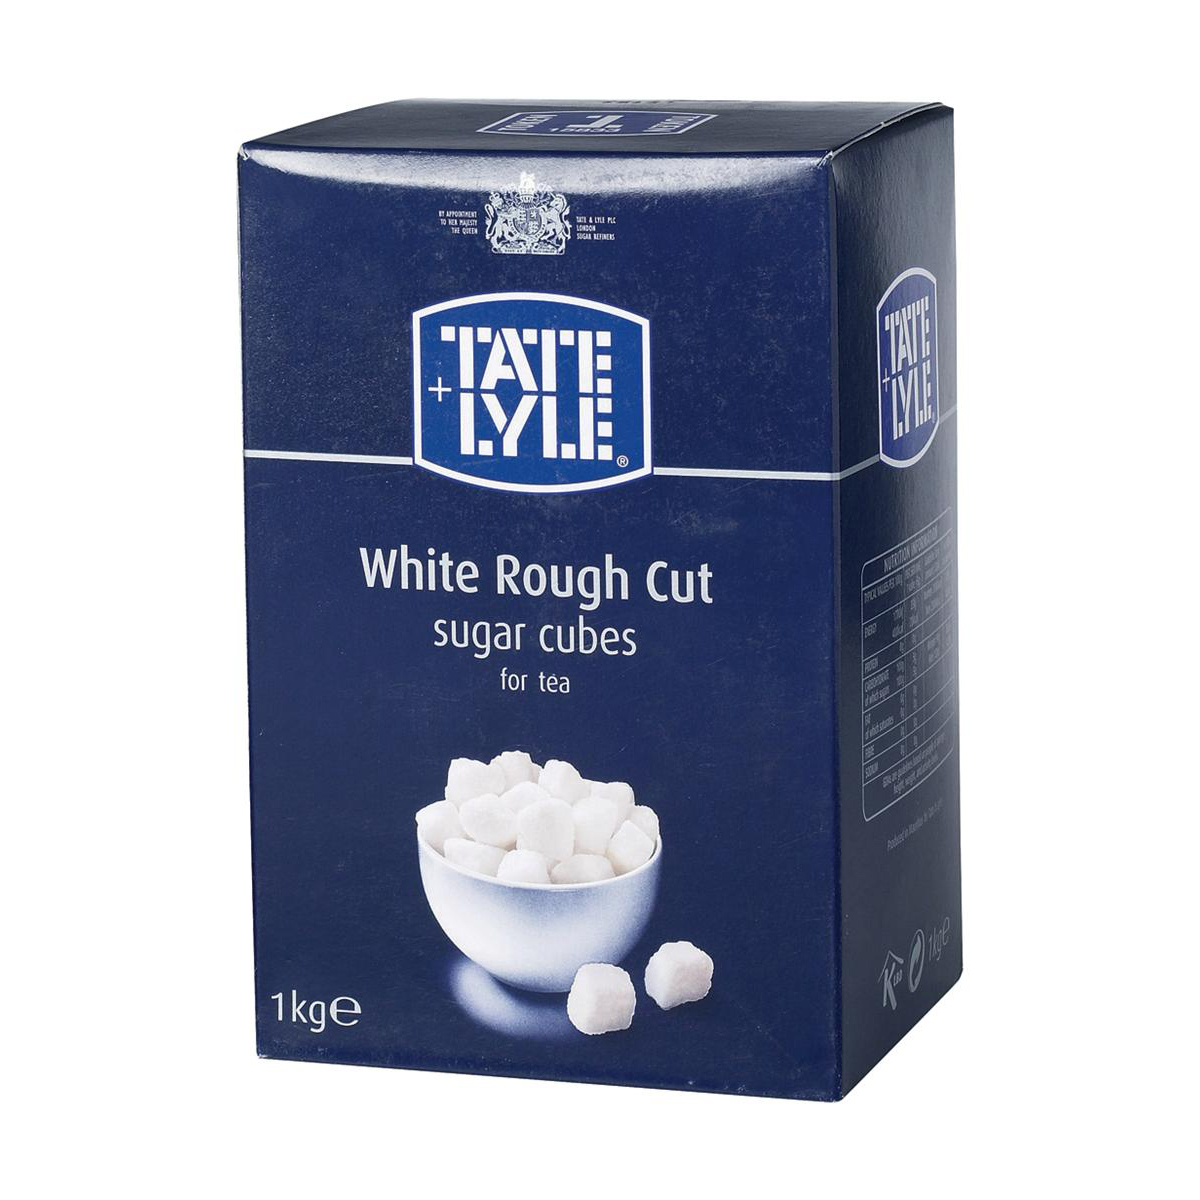 Sugar / Sweetener Tate & Lyle White Sugar Cubes Rough-cut 1 Kg Ref 412090